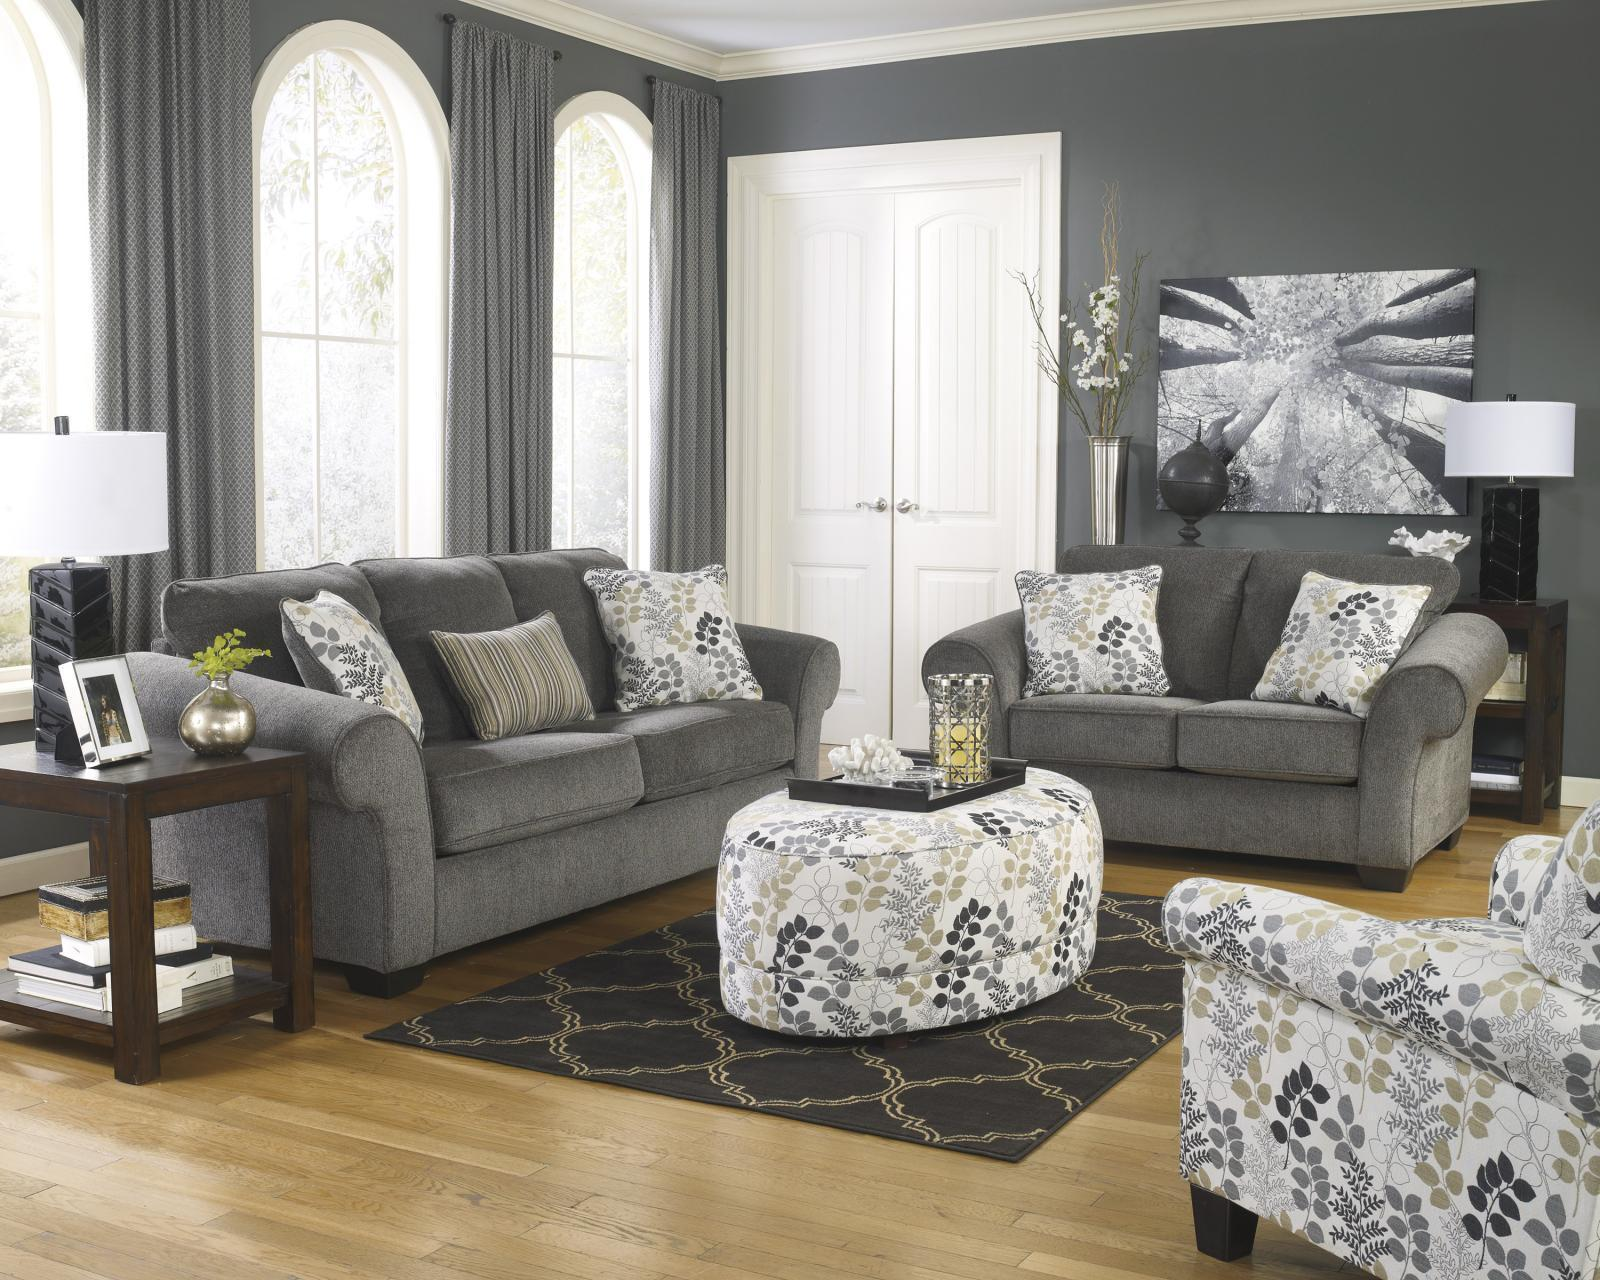 Ashley Makonnen Living Room Set 3pcs in Charcoal Upholstery Fabric Contemporary